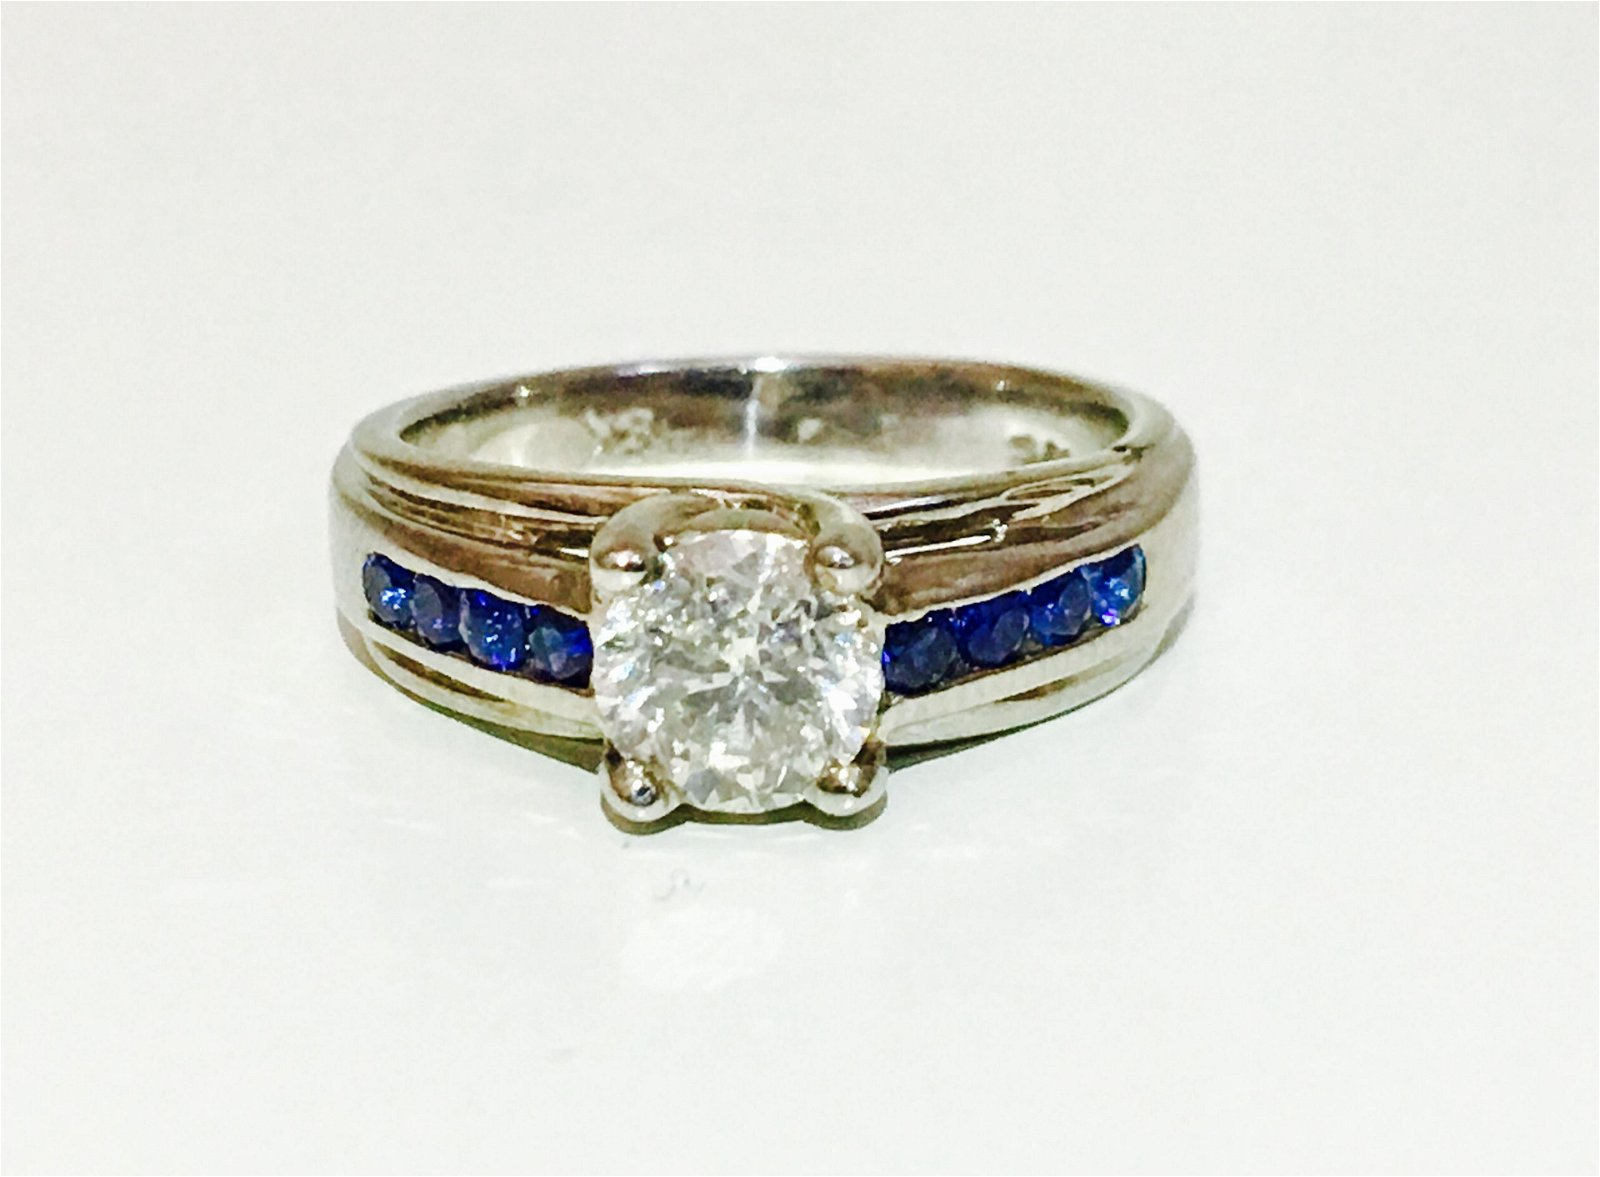 18K, 1.70 Carat Diamond and Blue Sapphire Ring